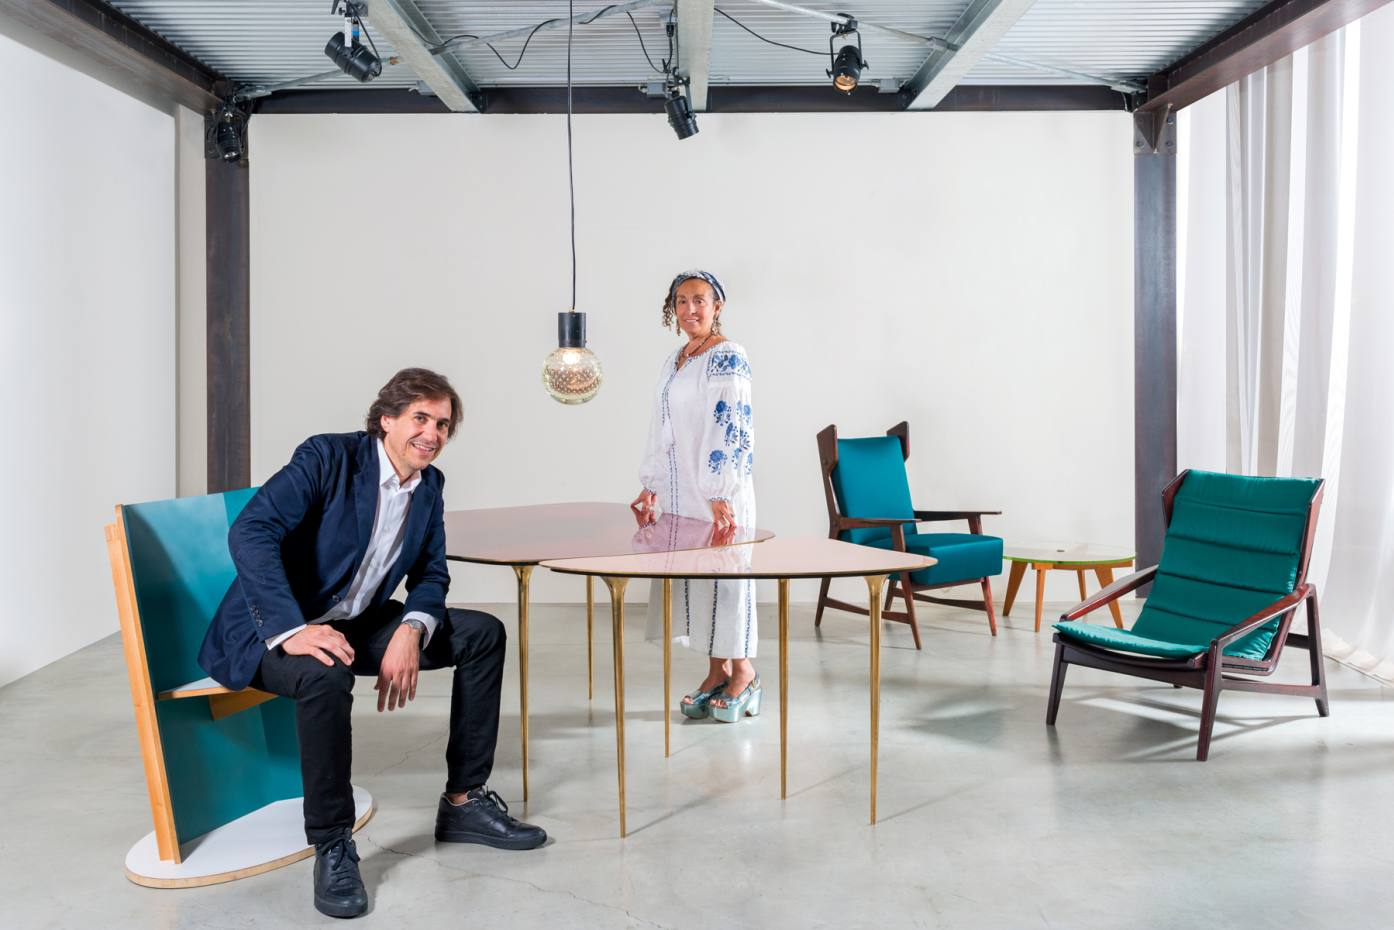 Property developer Karim Abillama and gallerist Nina Yashar in her Milan space, Nilufar Depot. Abillama sits on a Giò Ponti chair reinterpreted by Martino Gamper. Yashar stands at a dining table by Massimiliano Locatelli. Behind her are 1950s wood and cotton/satin armchairs and a wood and glass coffee table, all by Ponti